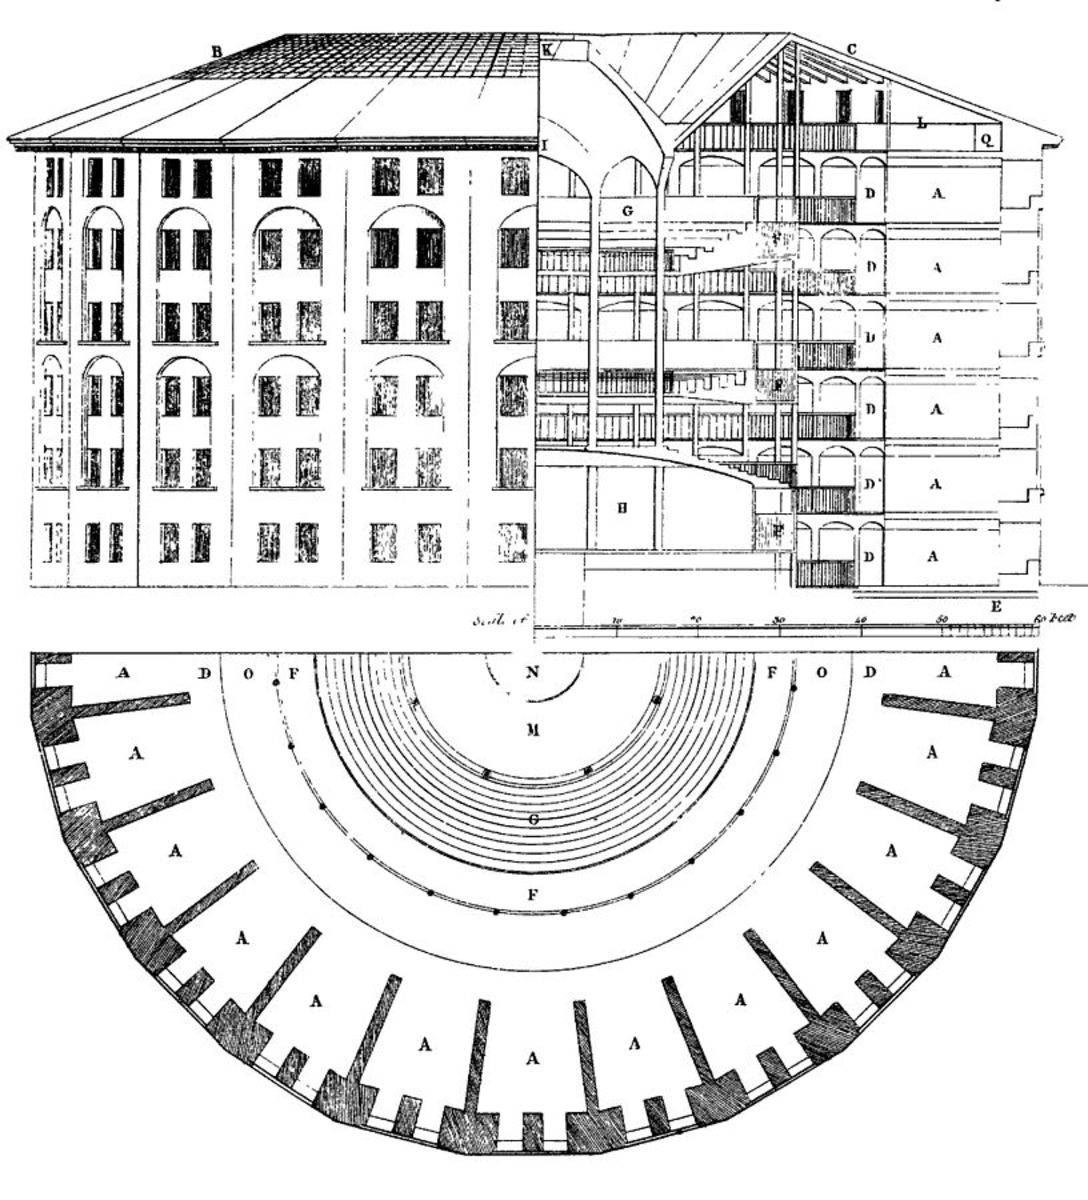 The Panopticon is a type of institutional building designed by the English philosopher and social theorist Jeremy Bentham in the late 18th century. The concept of the design is to allow all (pan-) inmates of an institution to be observed (-opticon) b